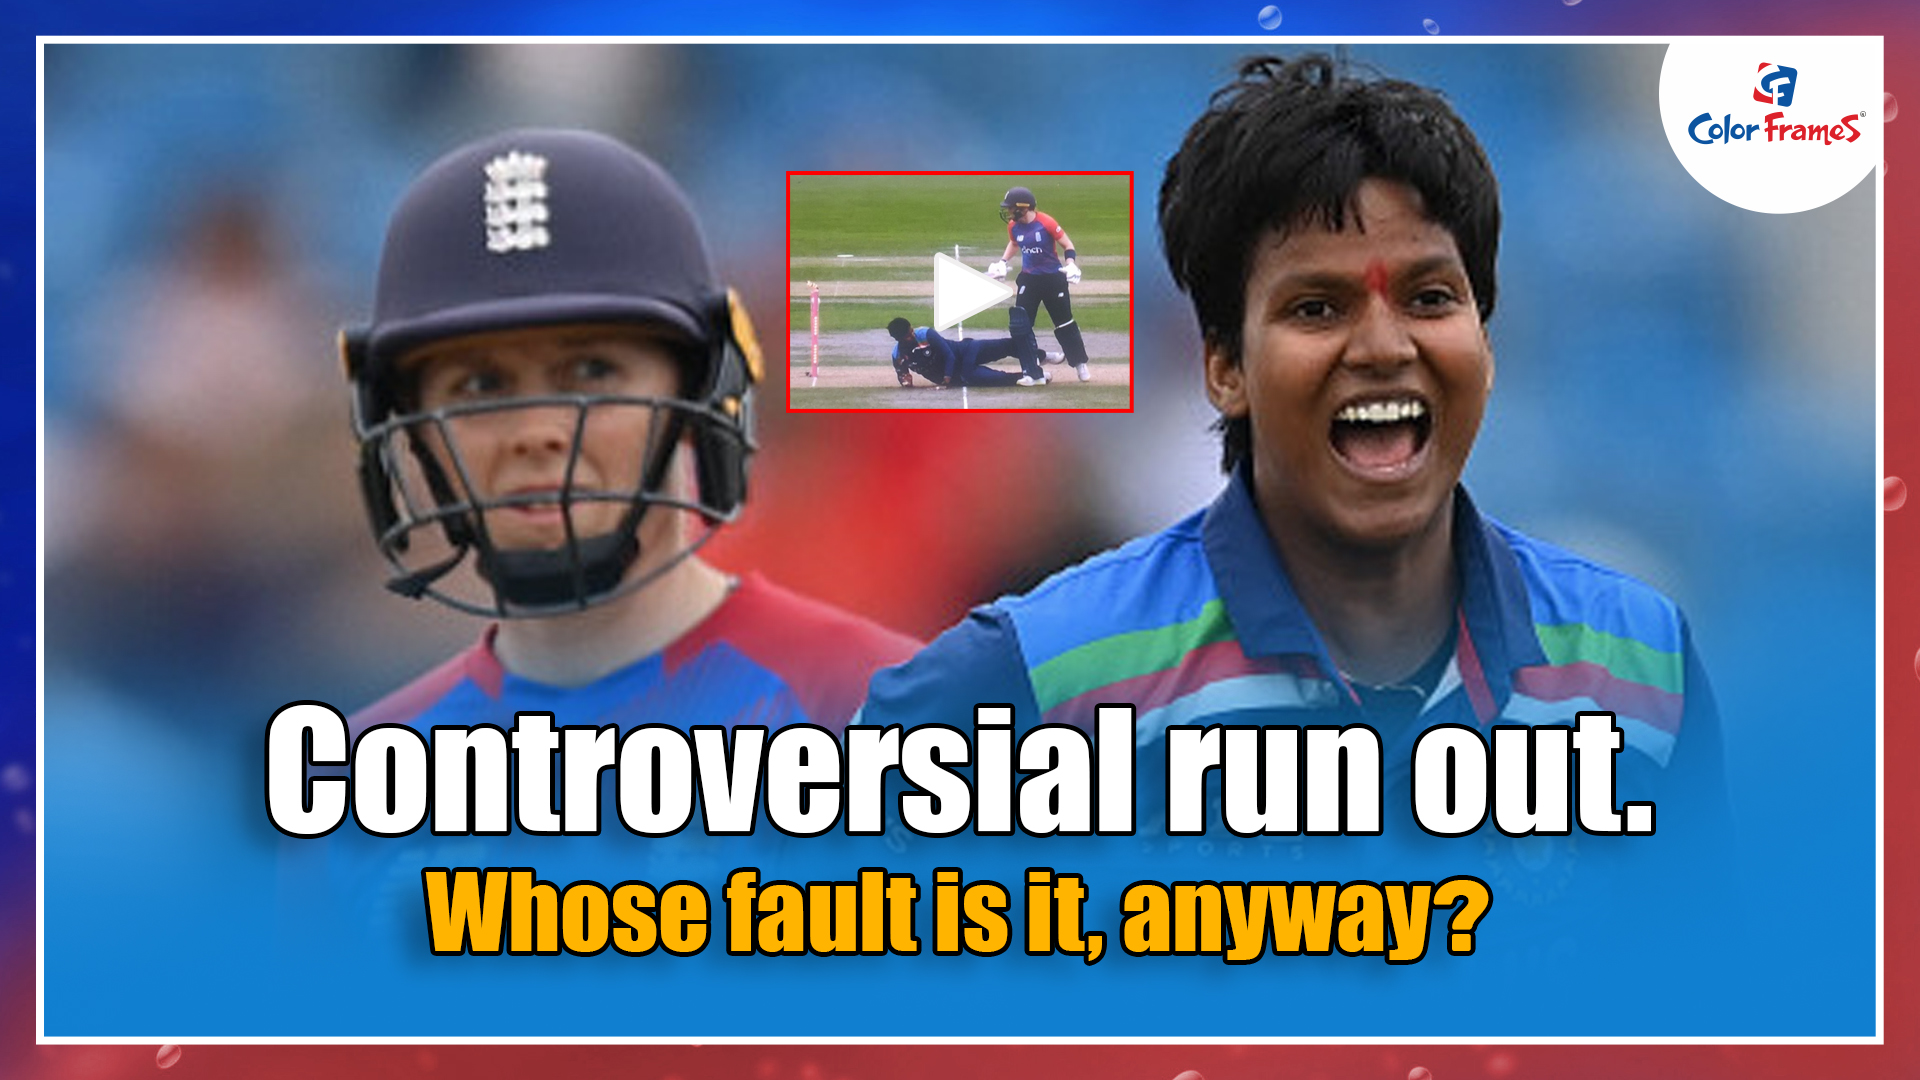 Controversial run out. Whose fault is it, anyway?